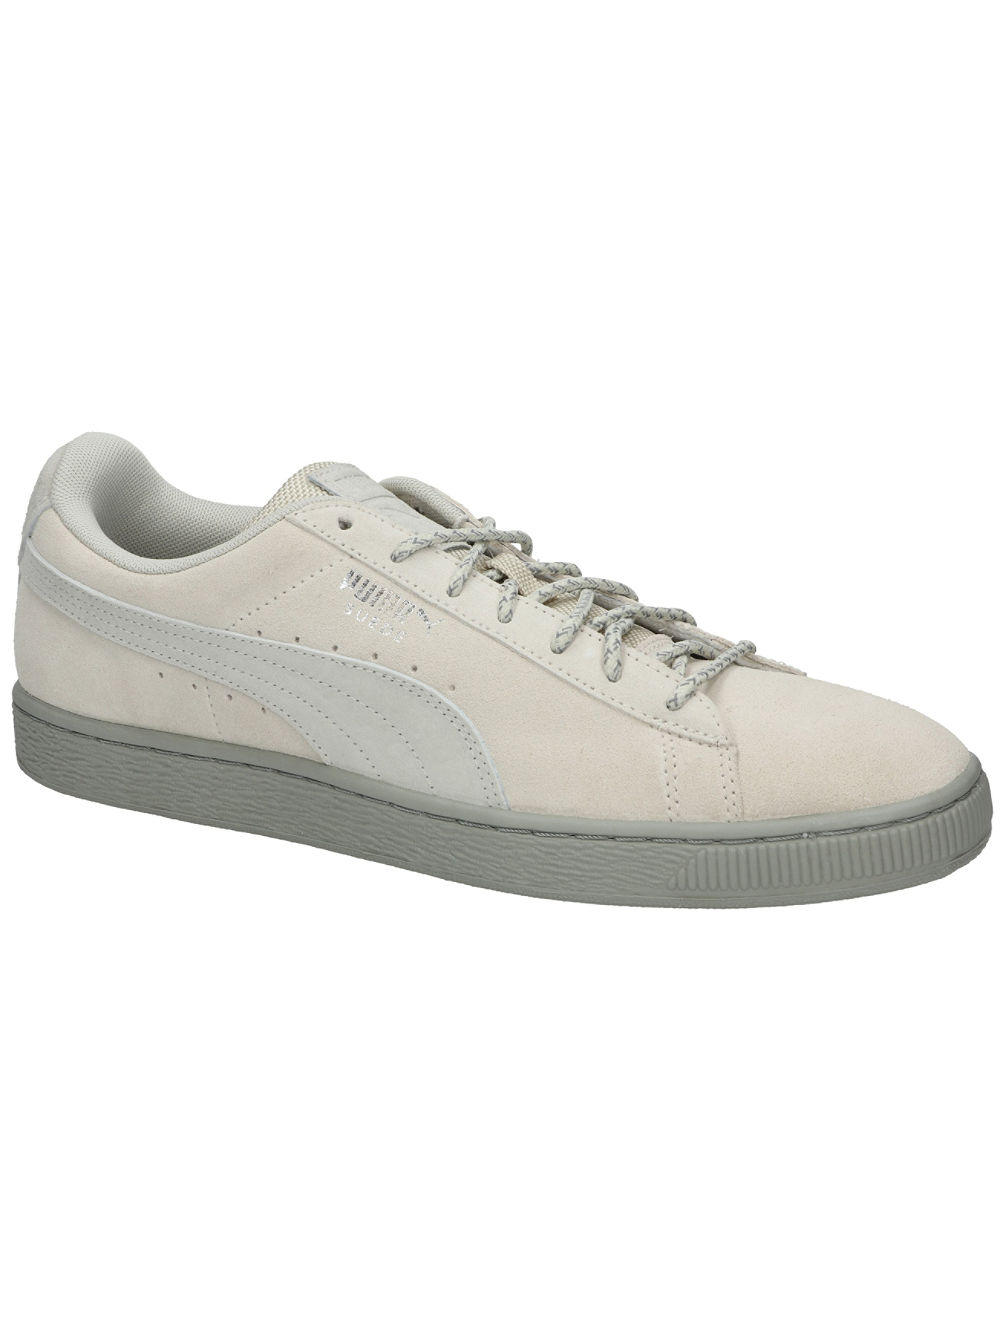 233c3492023 Buy Puma Suede Classic Weatherproof Sneakers online at blue-tomato.com